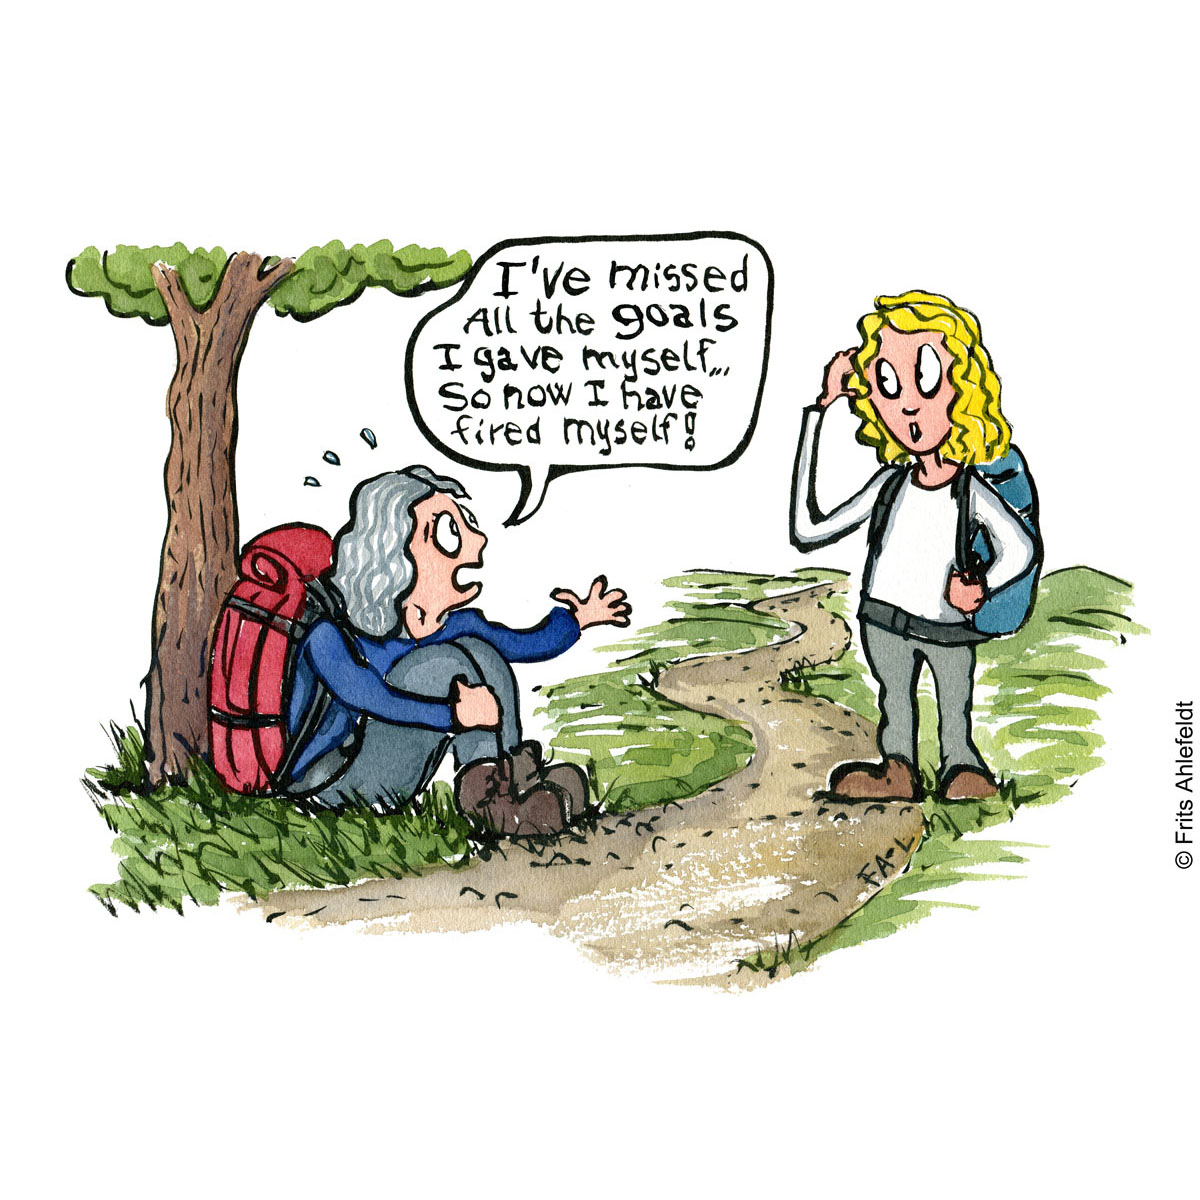 """Woman hiker sitting by tree saying: """"I missed all the goals I gave myself, so now I fired myself"""" Illustration by Frits Ahlefeldt"""